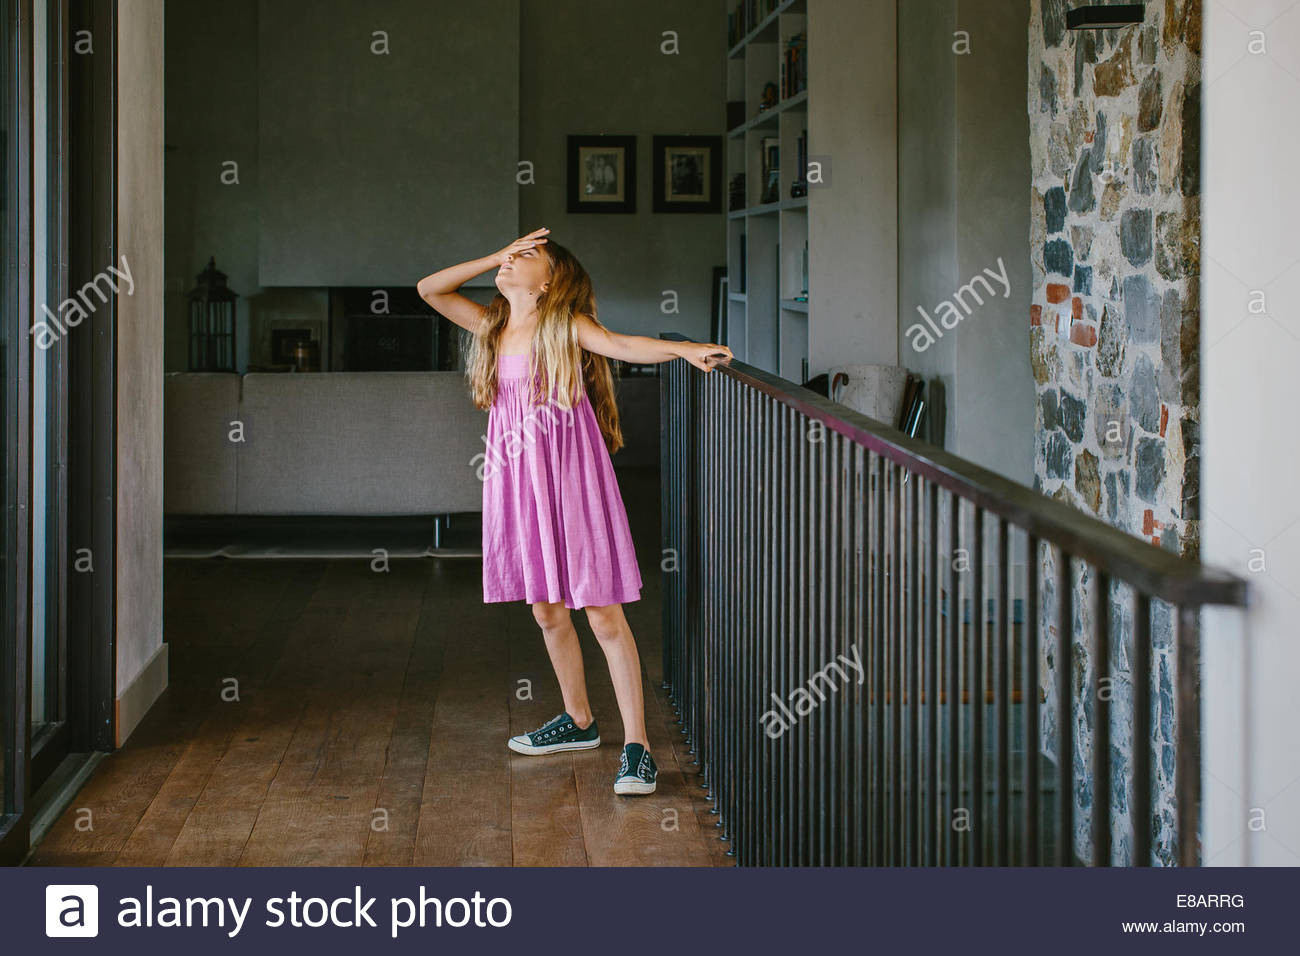 Girl on landing with hand on forehead - Stock Image